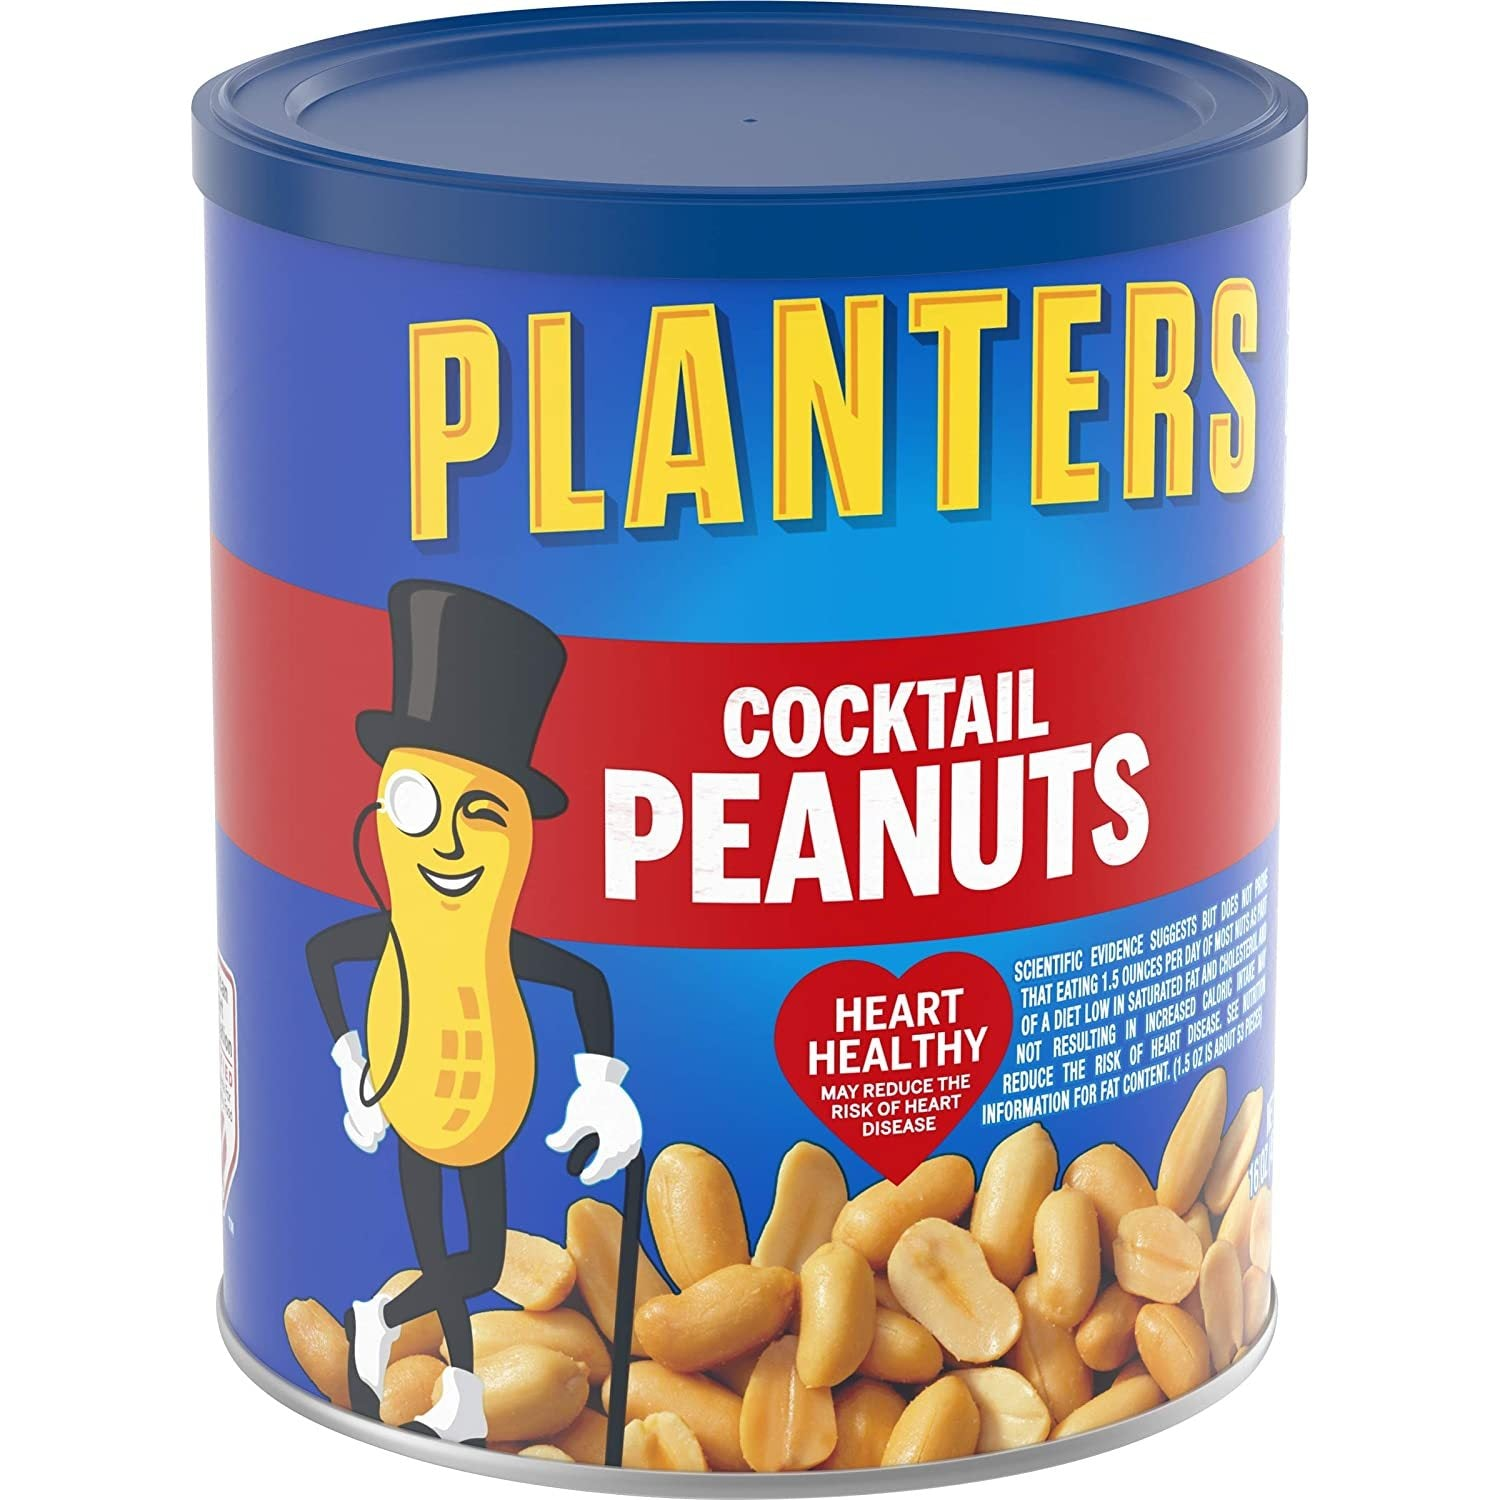 bel>Planters Cocktail Peanuts, 6.5oz